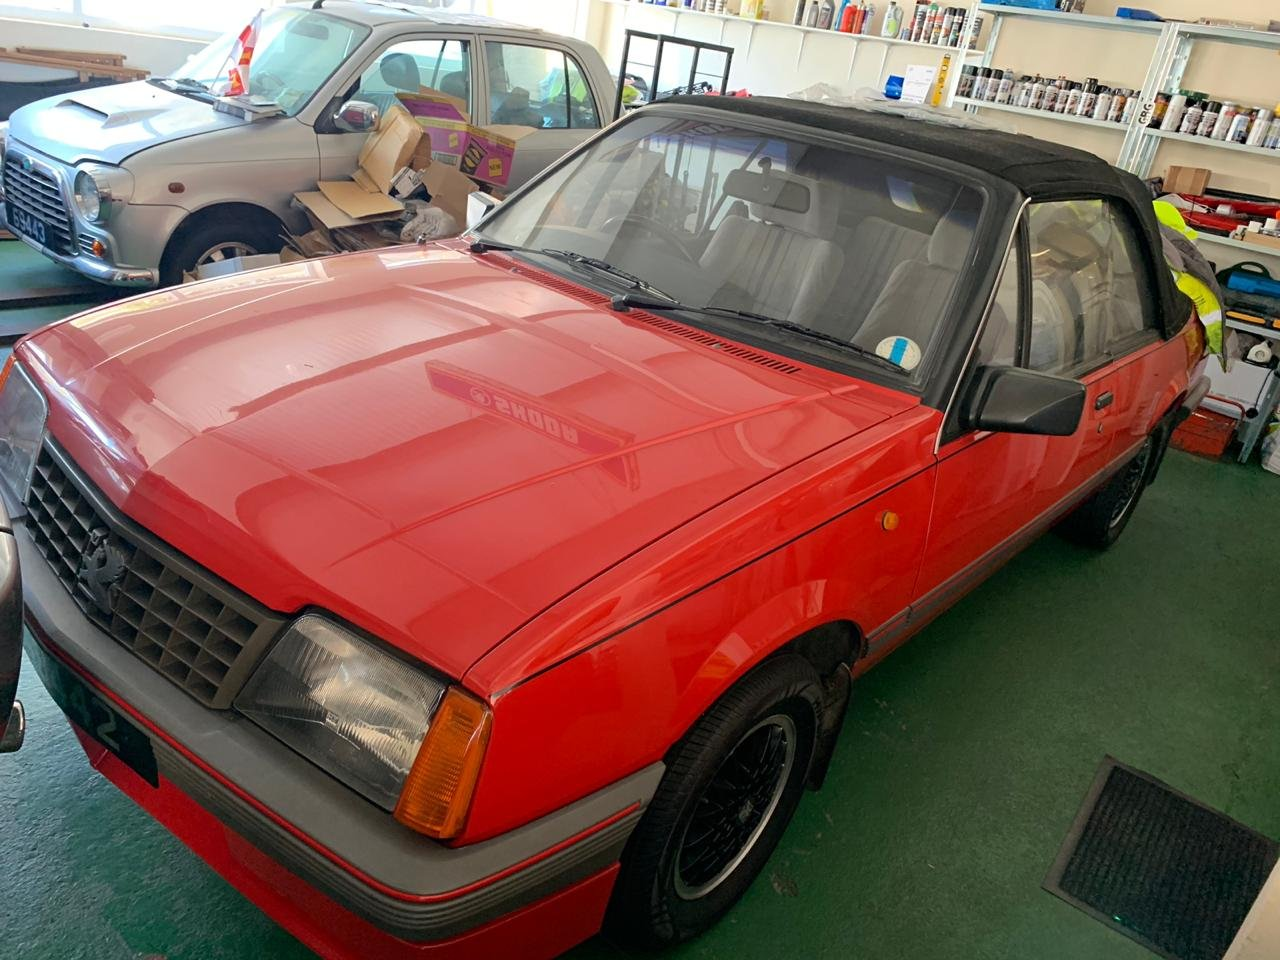 1986 Vauxhall Cavalier Cabriolet very low miles For Sale (picture 5 of 5)